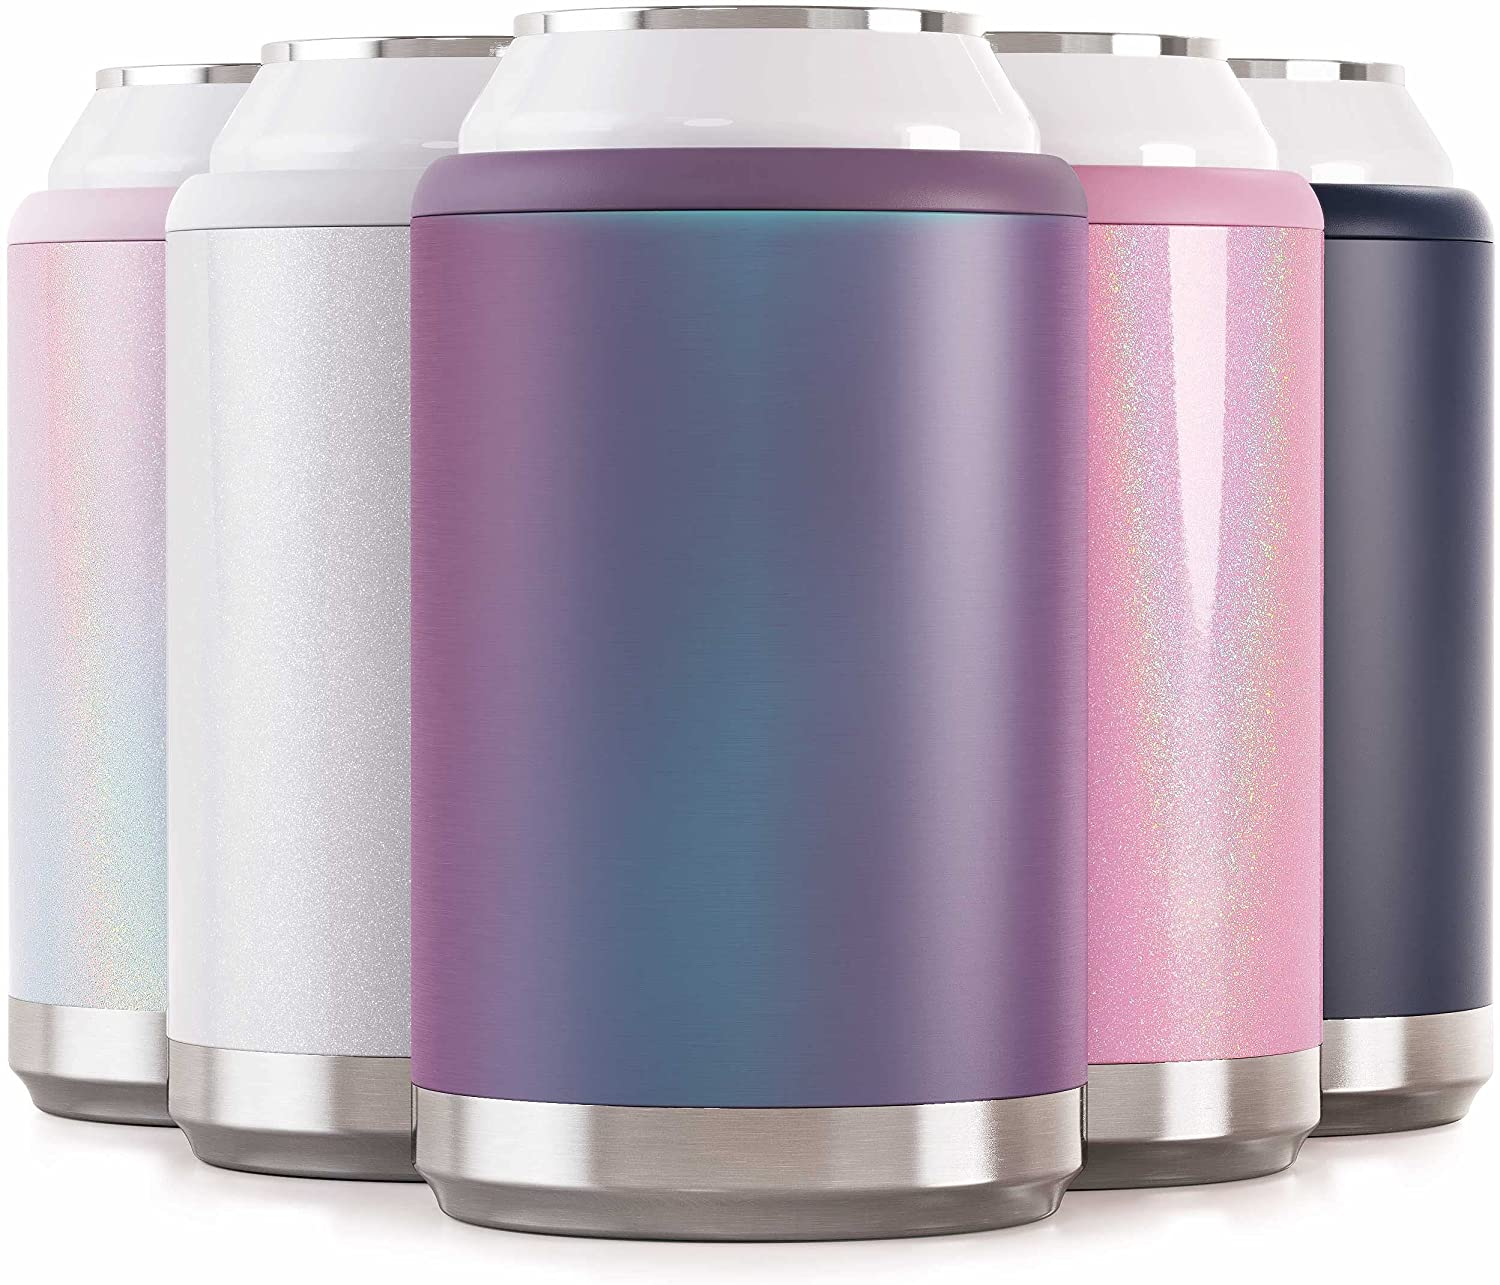 Maars Standard Can Cooler for Beer & Soda   Stainless Steel 12oz Beverage Sleeve, Double Wall Vacuum Insulated Drink Holder - Purple Haze